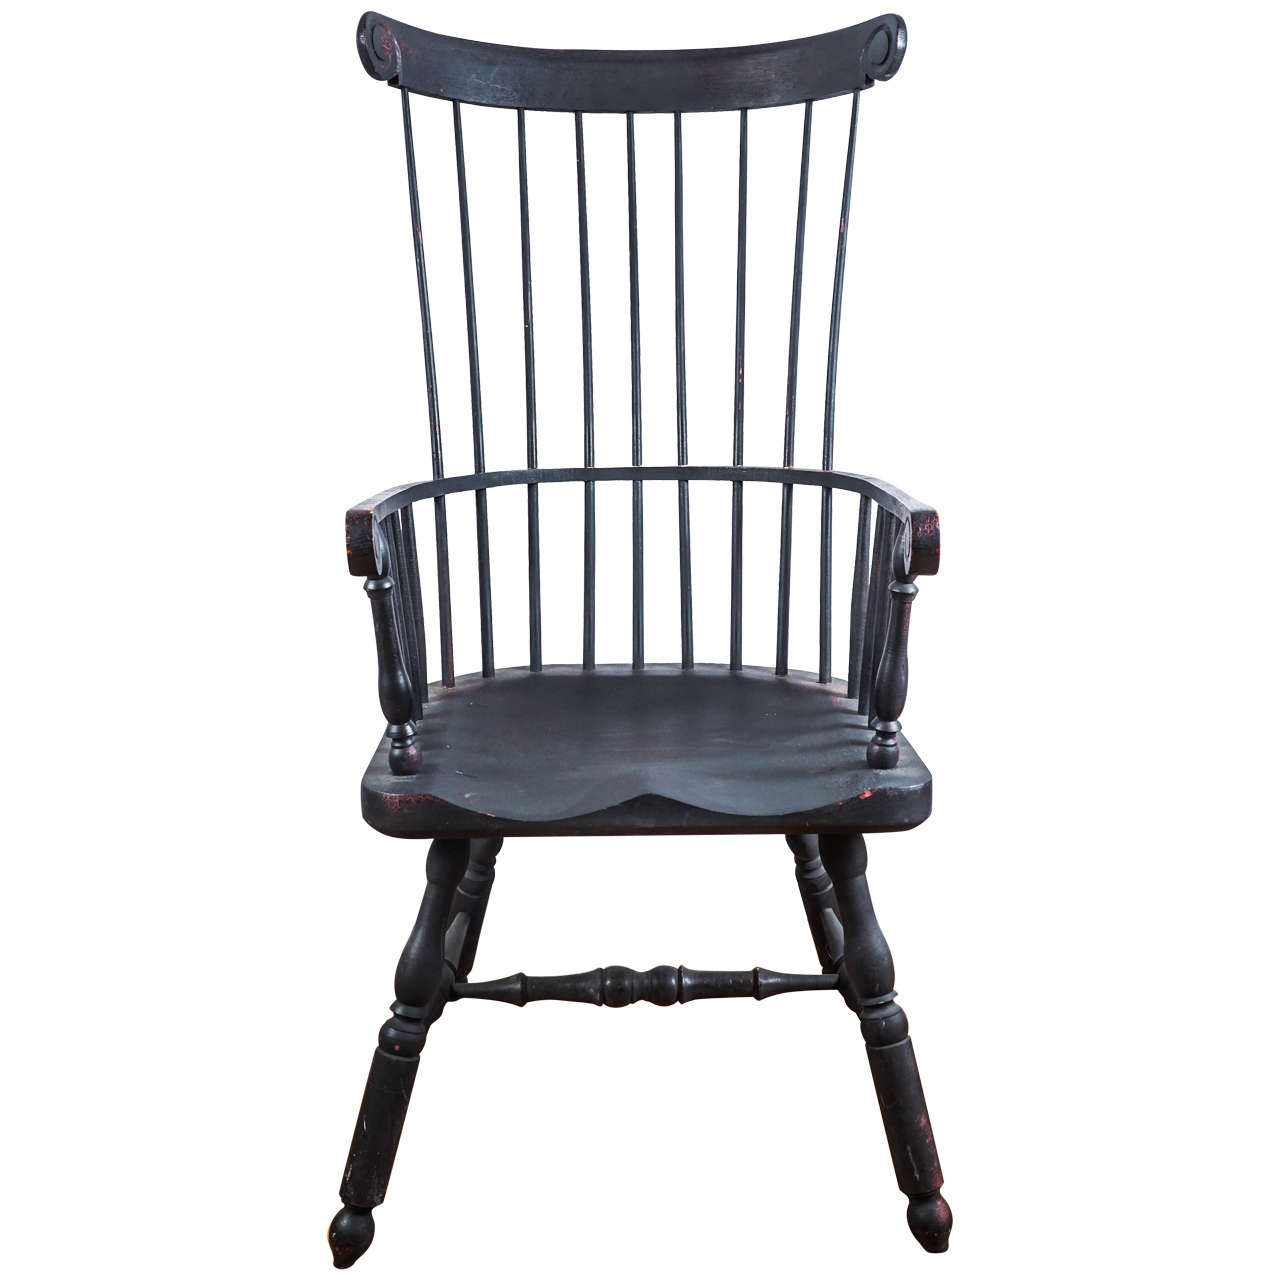 HighBack Windsor Chair at 1stdibs